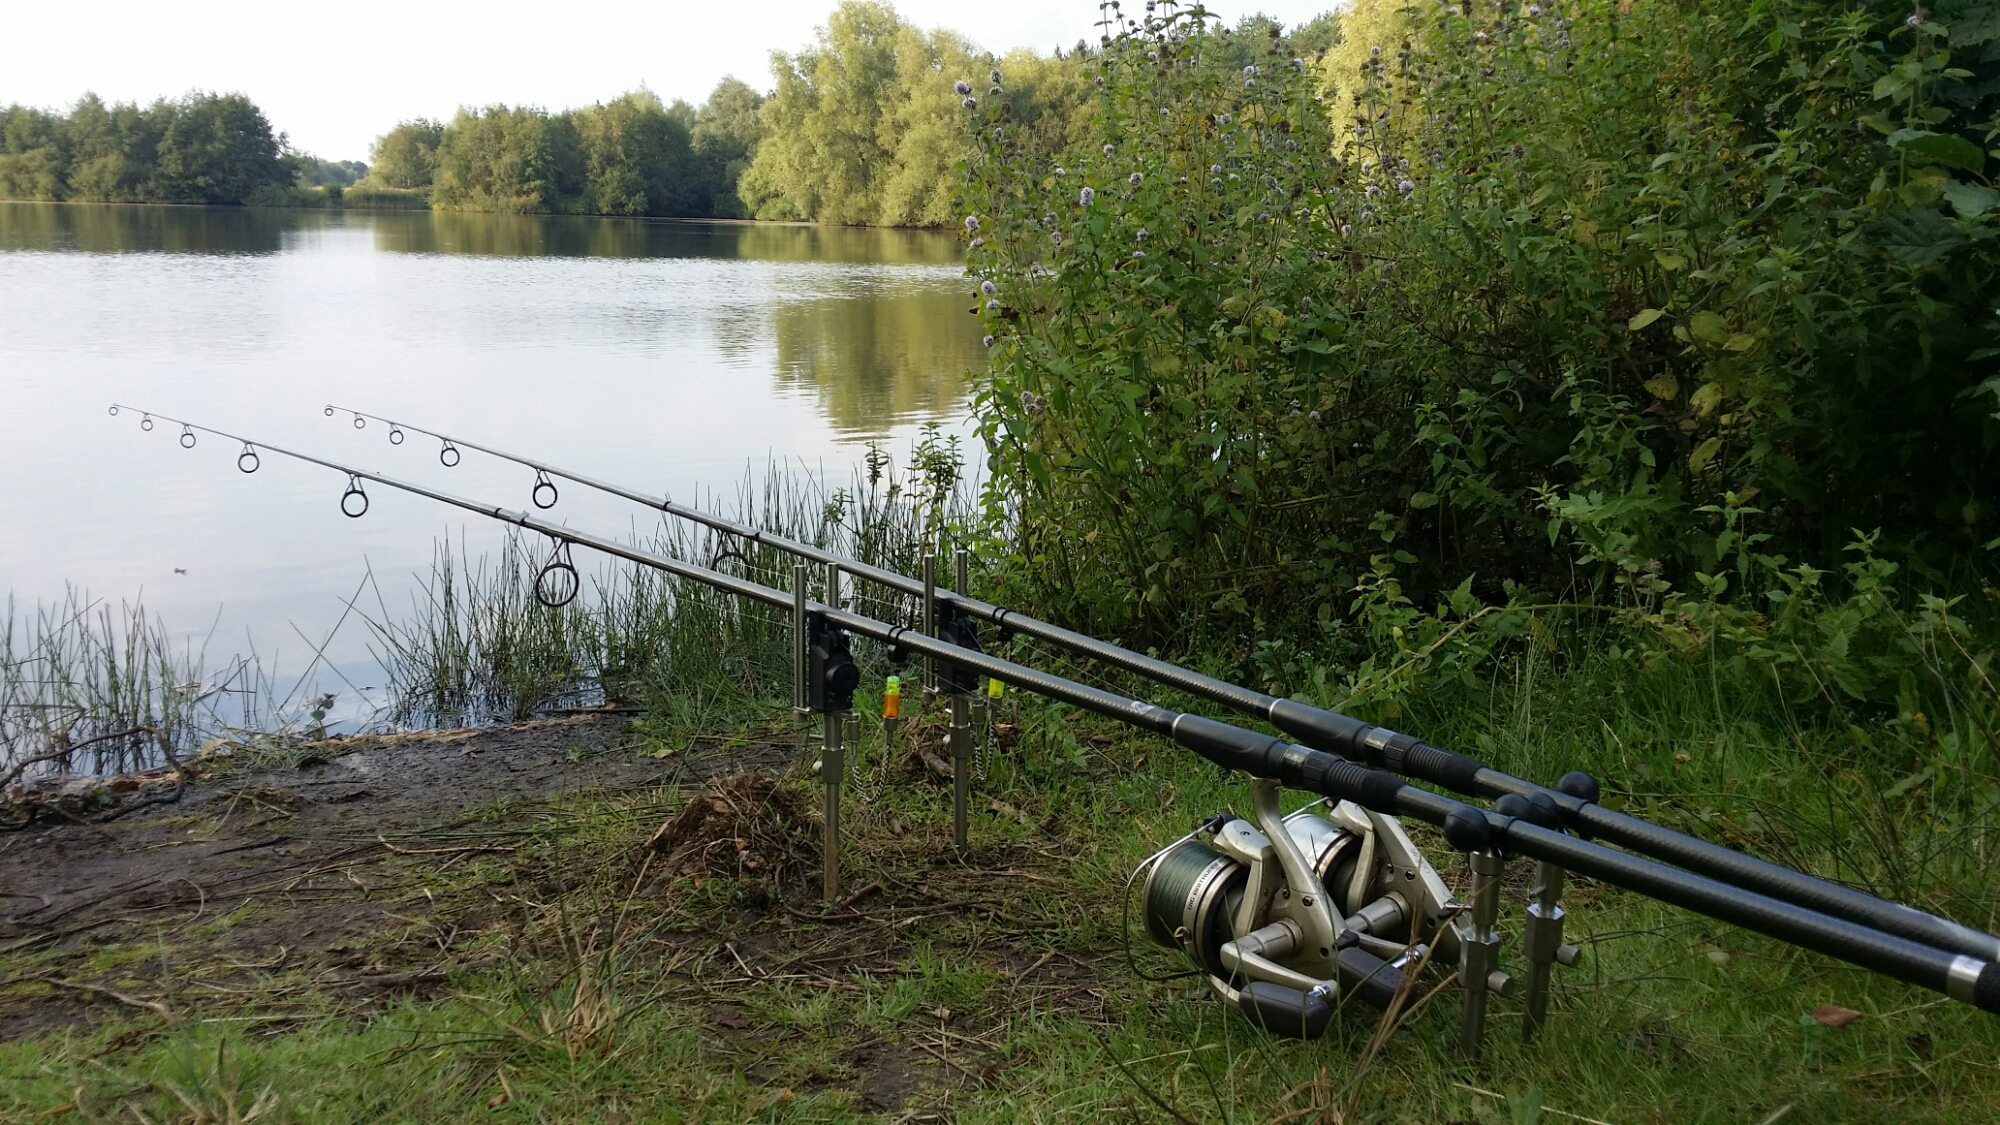 Trip no37 carp fishing 2014 uk carp coarse fishing - Carp fishing wallpaper hd ...